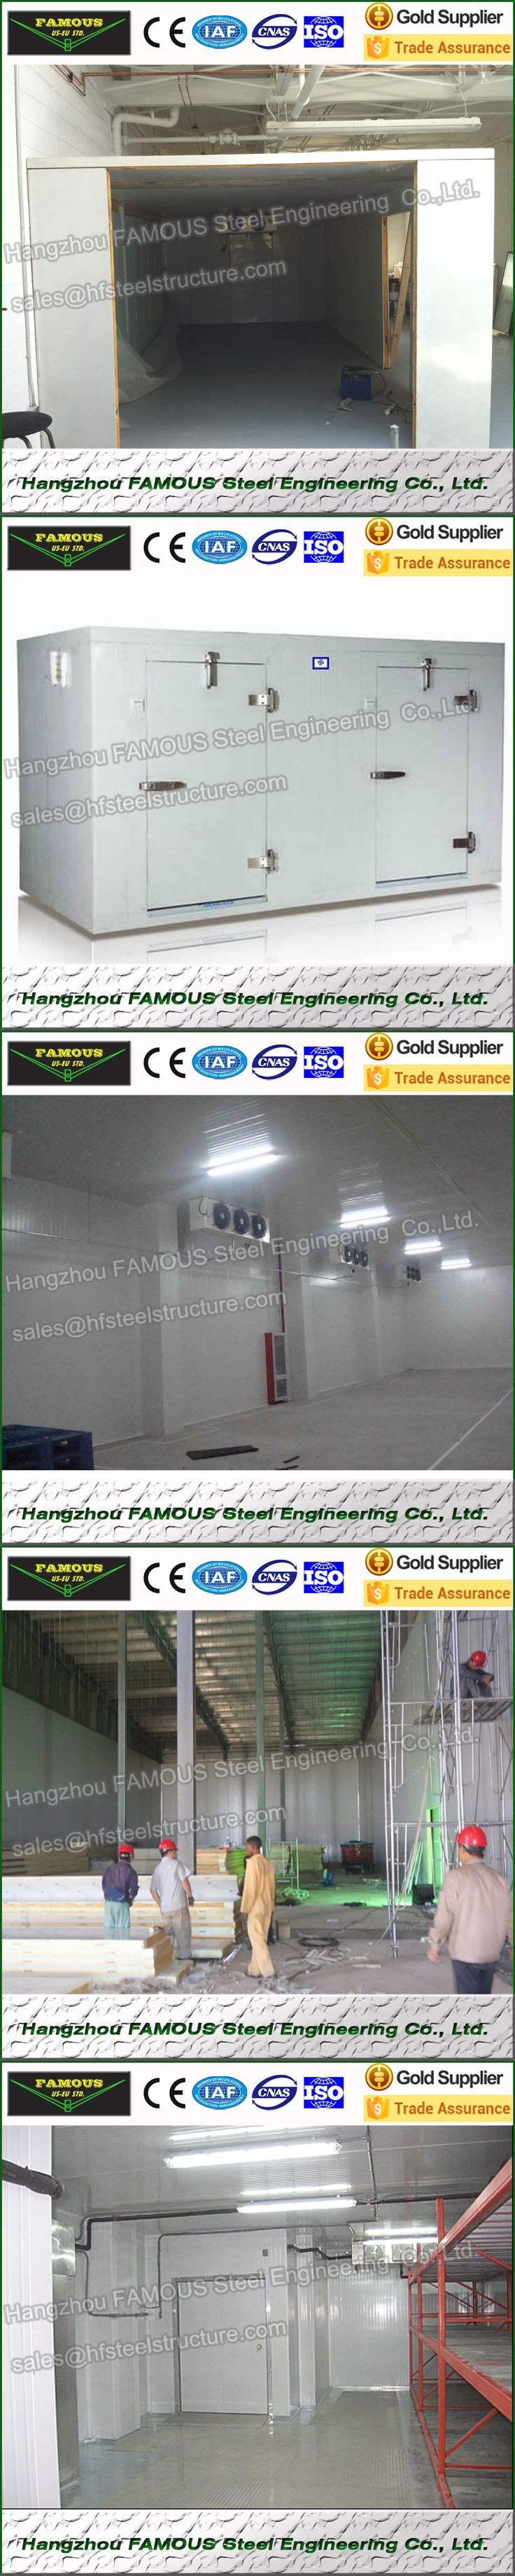 Walk In Cooler Room And Refrigerator Made of PU Sandwich Panel, Industrial Blast Freezers And Vegetables Cold Storage